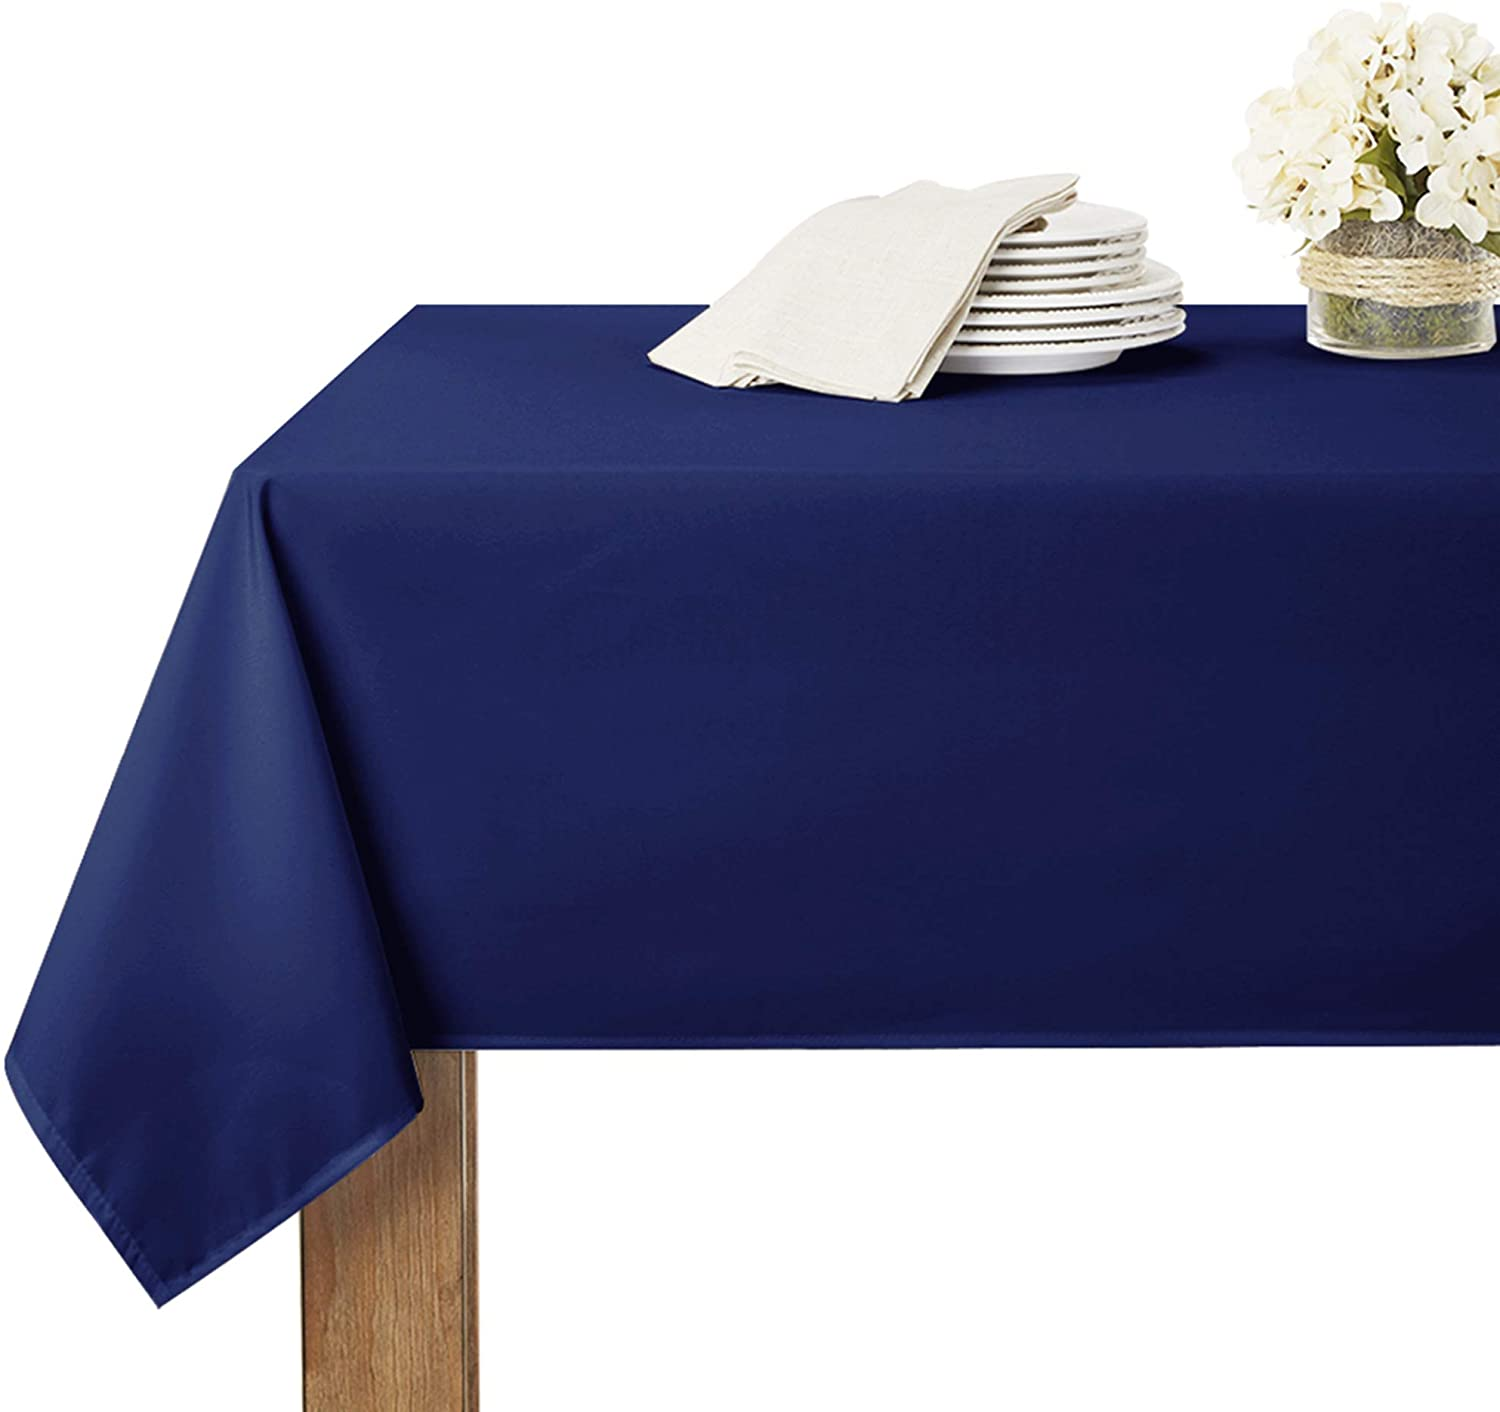 RYB HOME Outdoor Tablecloth Rectangular Table Linens Spillproof Water Resistant Tabletop Decor for Kitchen / Dining / Brithday Party / Baby Shower, 60 inch by 102 inch, Navy Blue